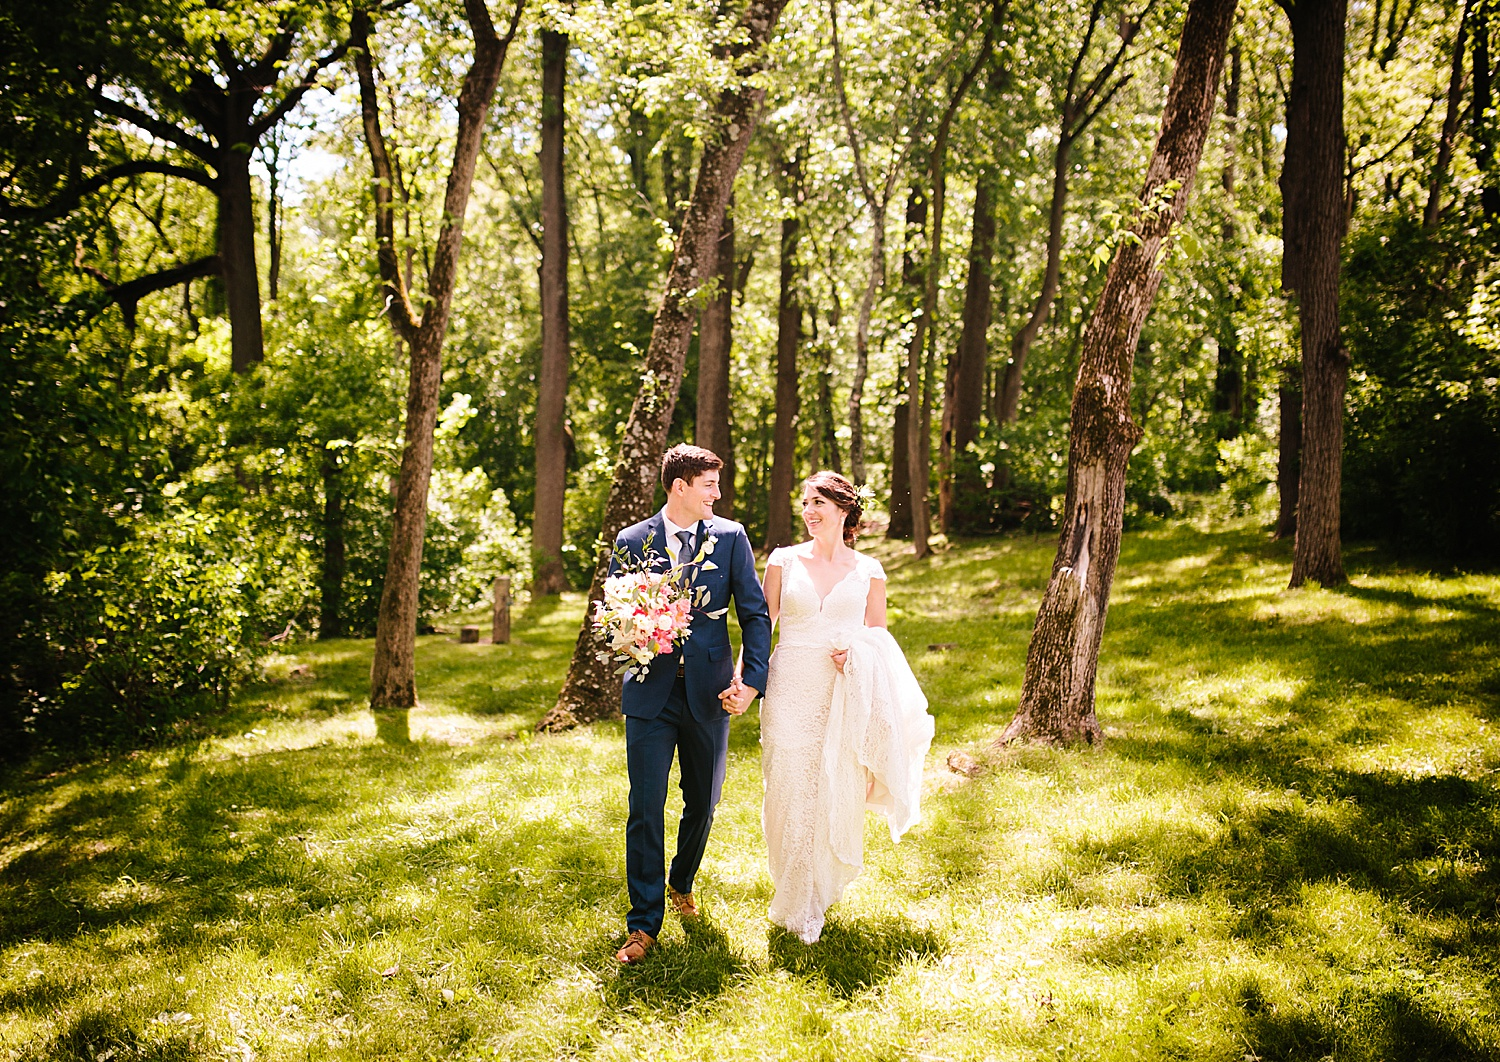 emilyaustin_rosebank_winery_newhope_farm_wedding_image059.jpg